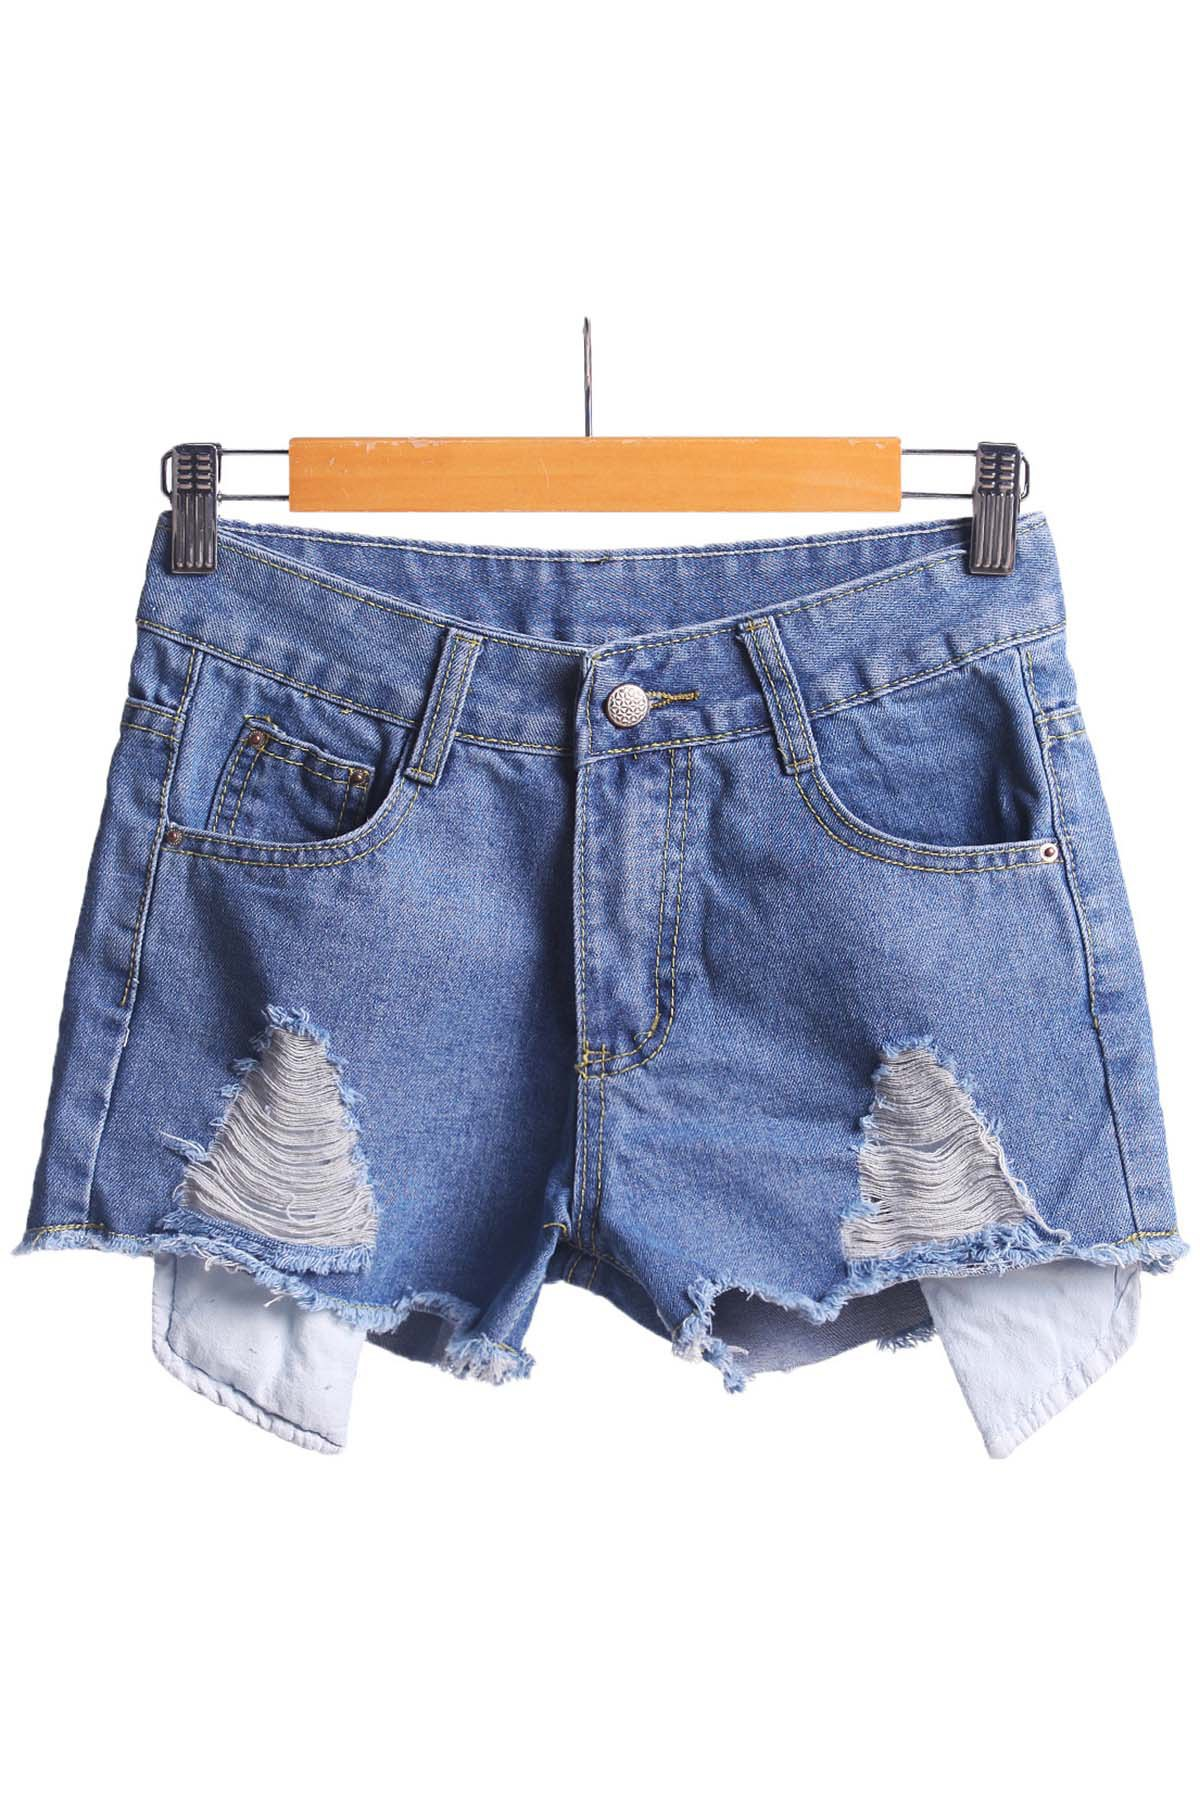 Stylish Ripped Frayed Destroy Slimming Denim Shorts For Women